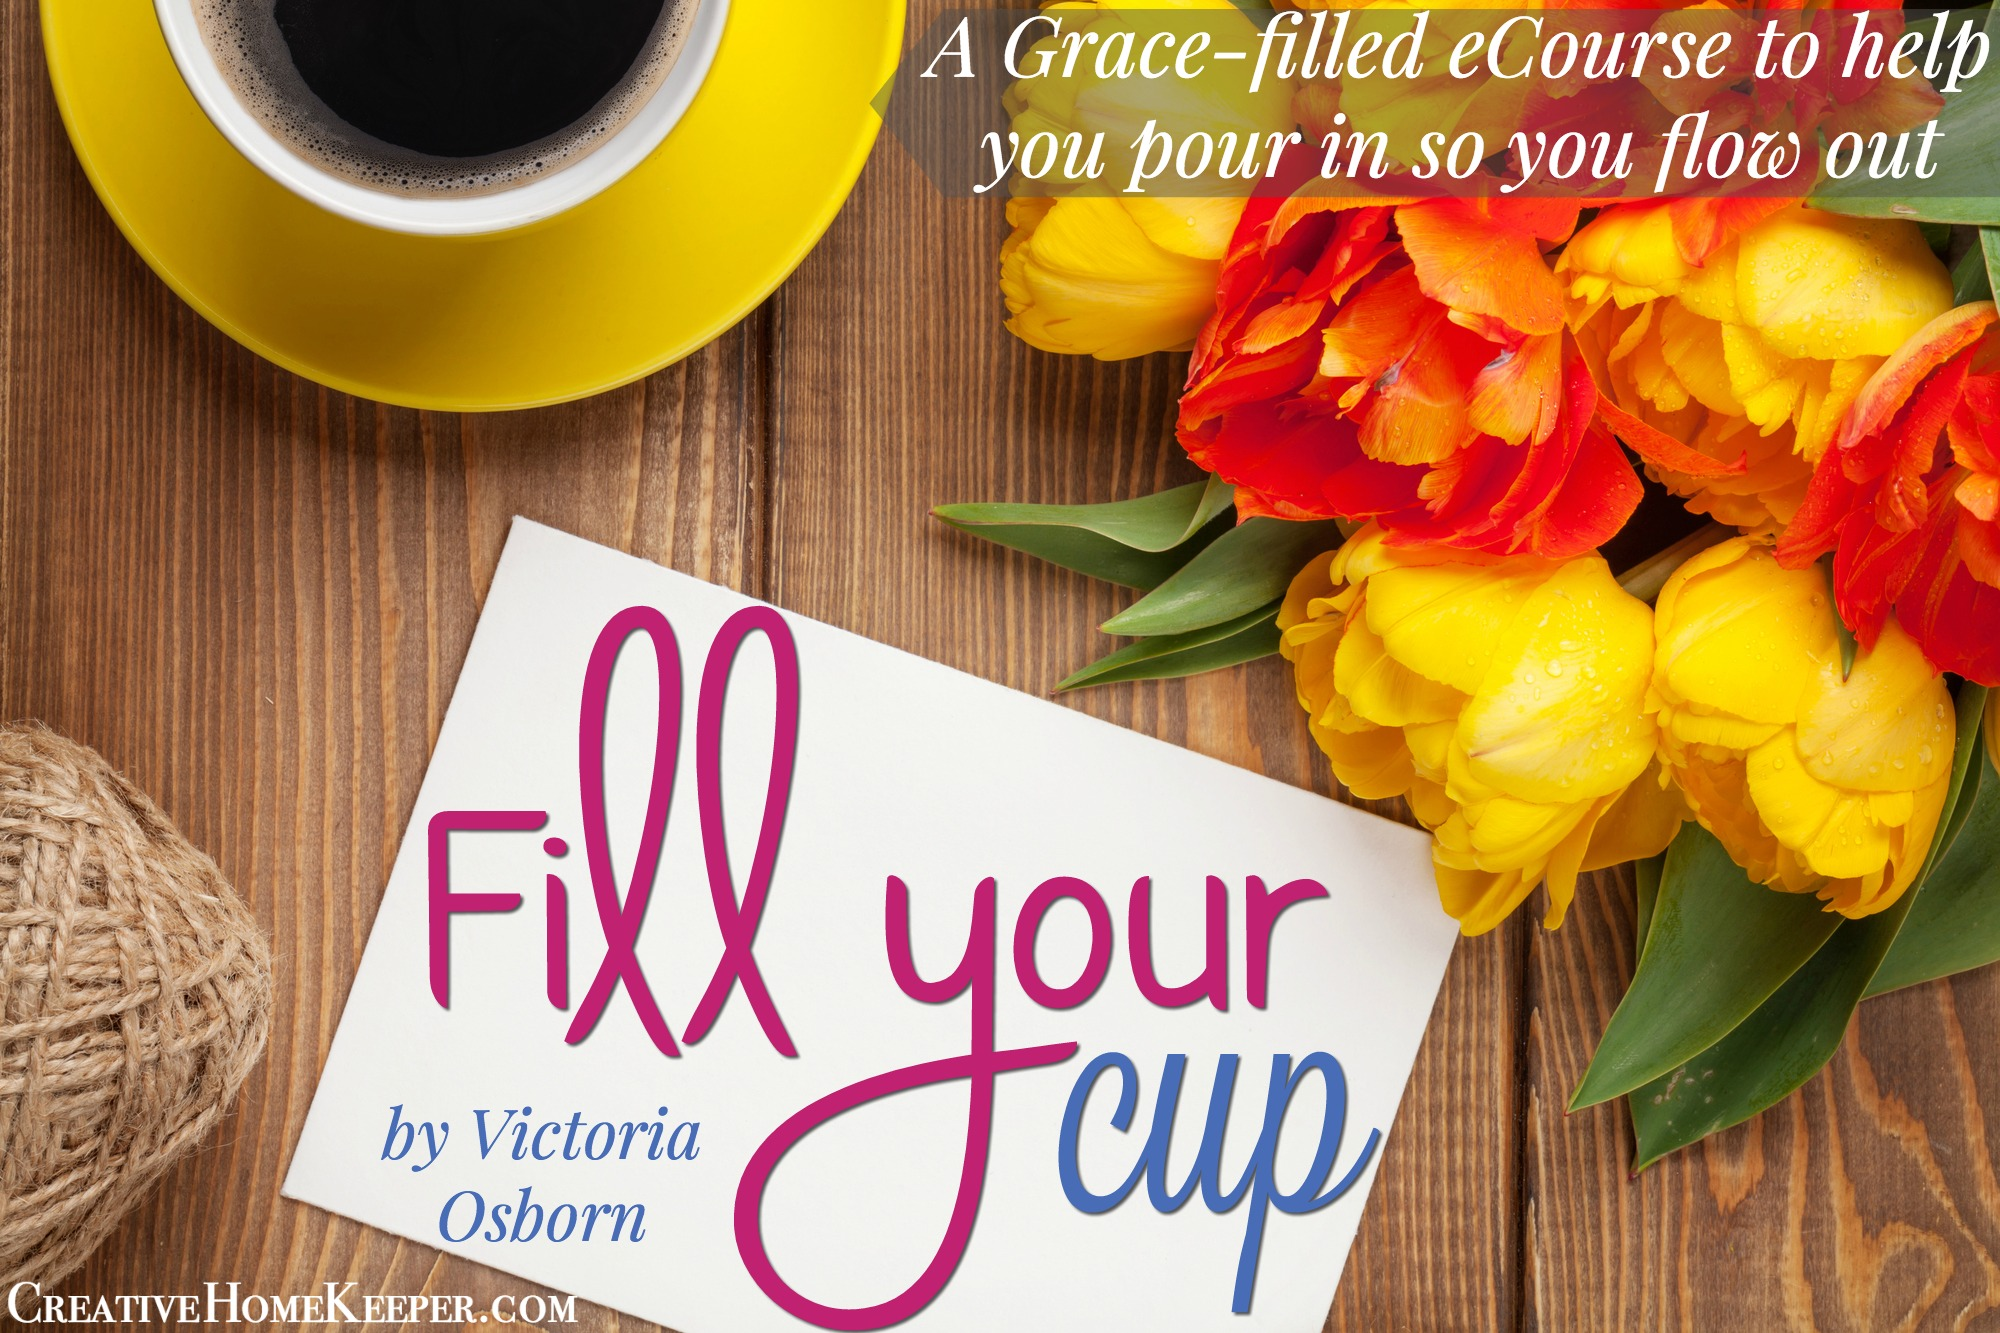 Fill Your Cup: A Grace-filled eCourse to help you pour in so you can flow out